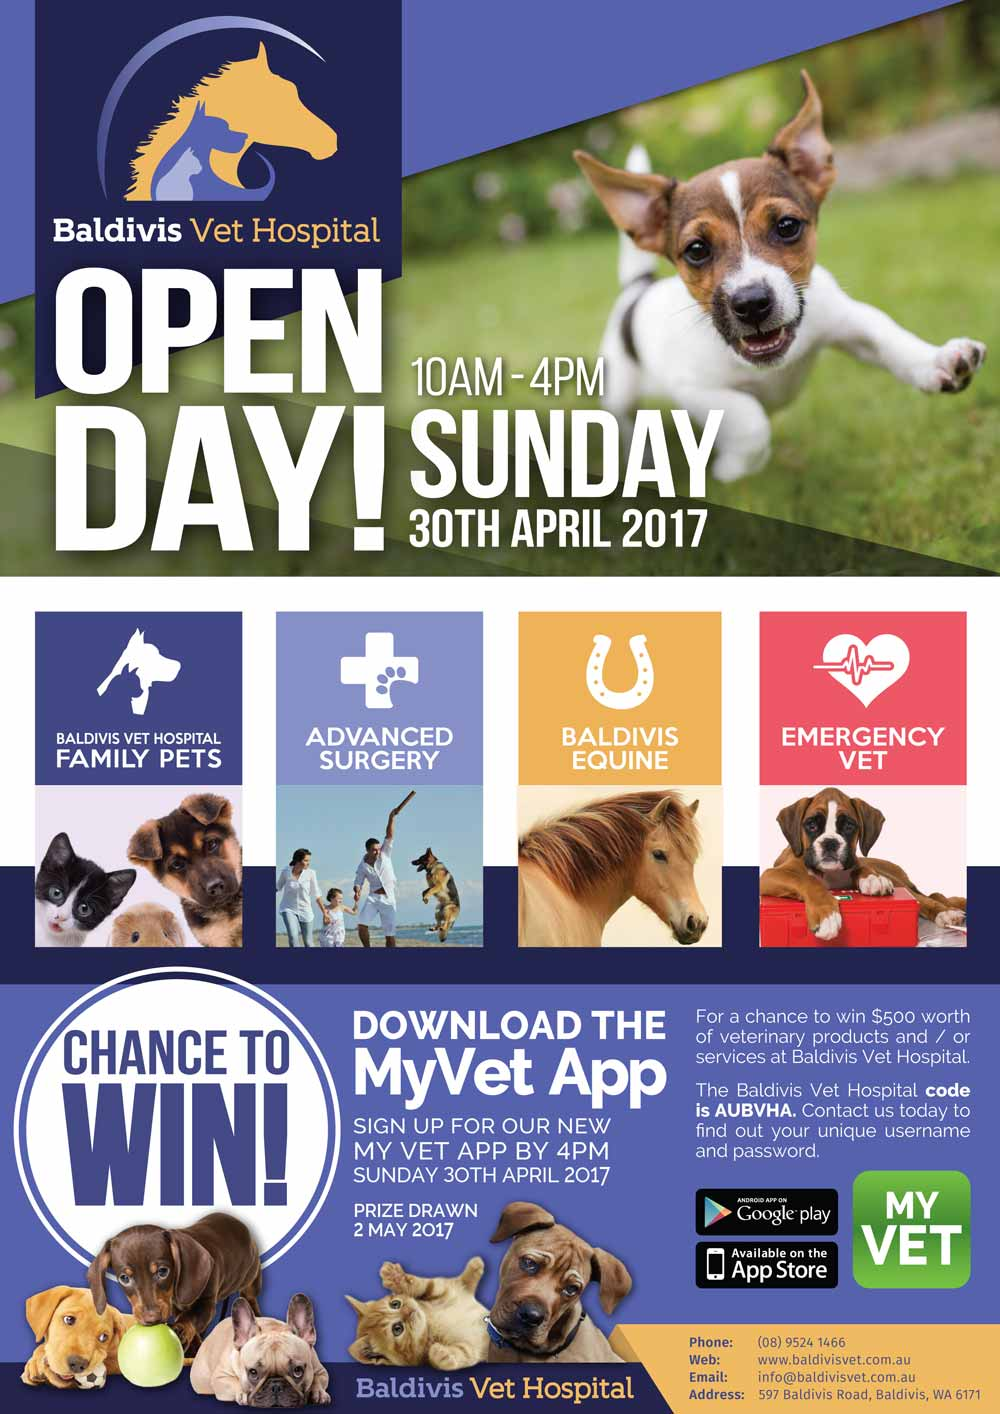 bvh-open-day-flyer-30th-april-2017